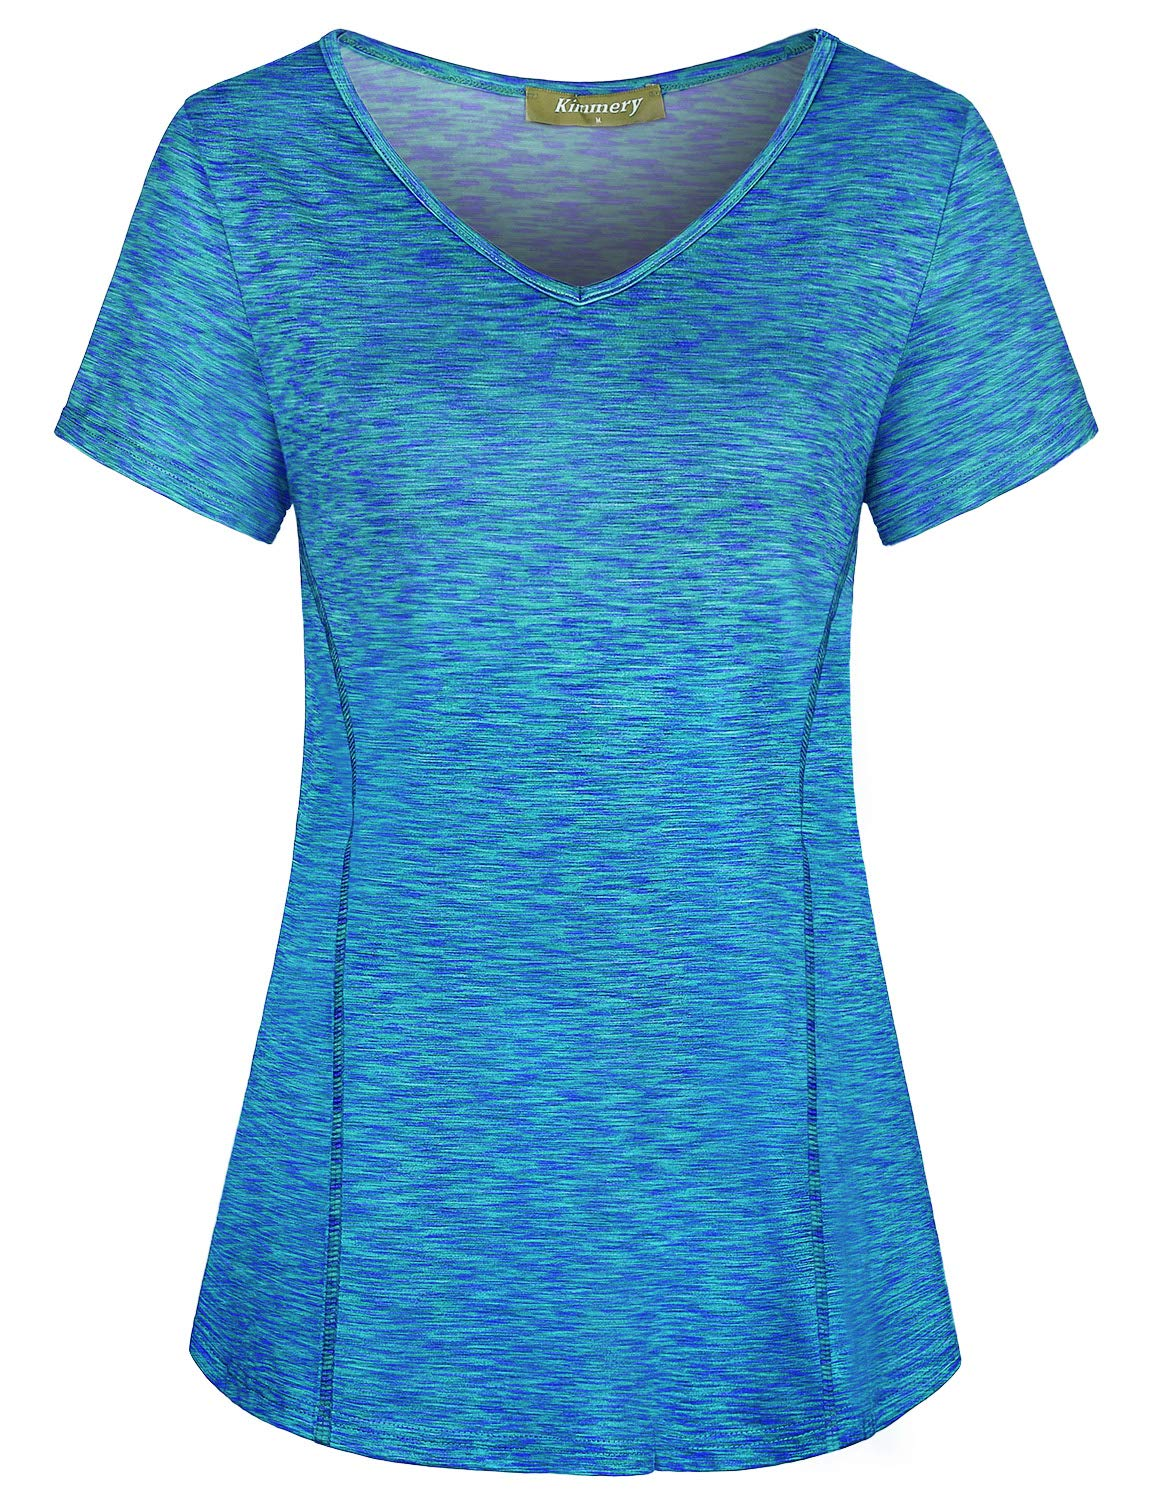 Kimmery Workout Shirts for Women, Breathe Free Stretchy Short V Neck Sleeve Tops Summer Daily Casual Outside Beach Walking Travel Vacation Wear Blue Large by Kimmery